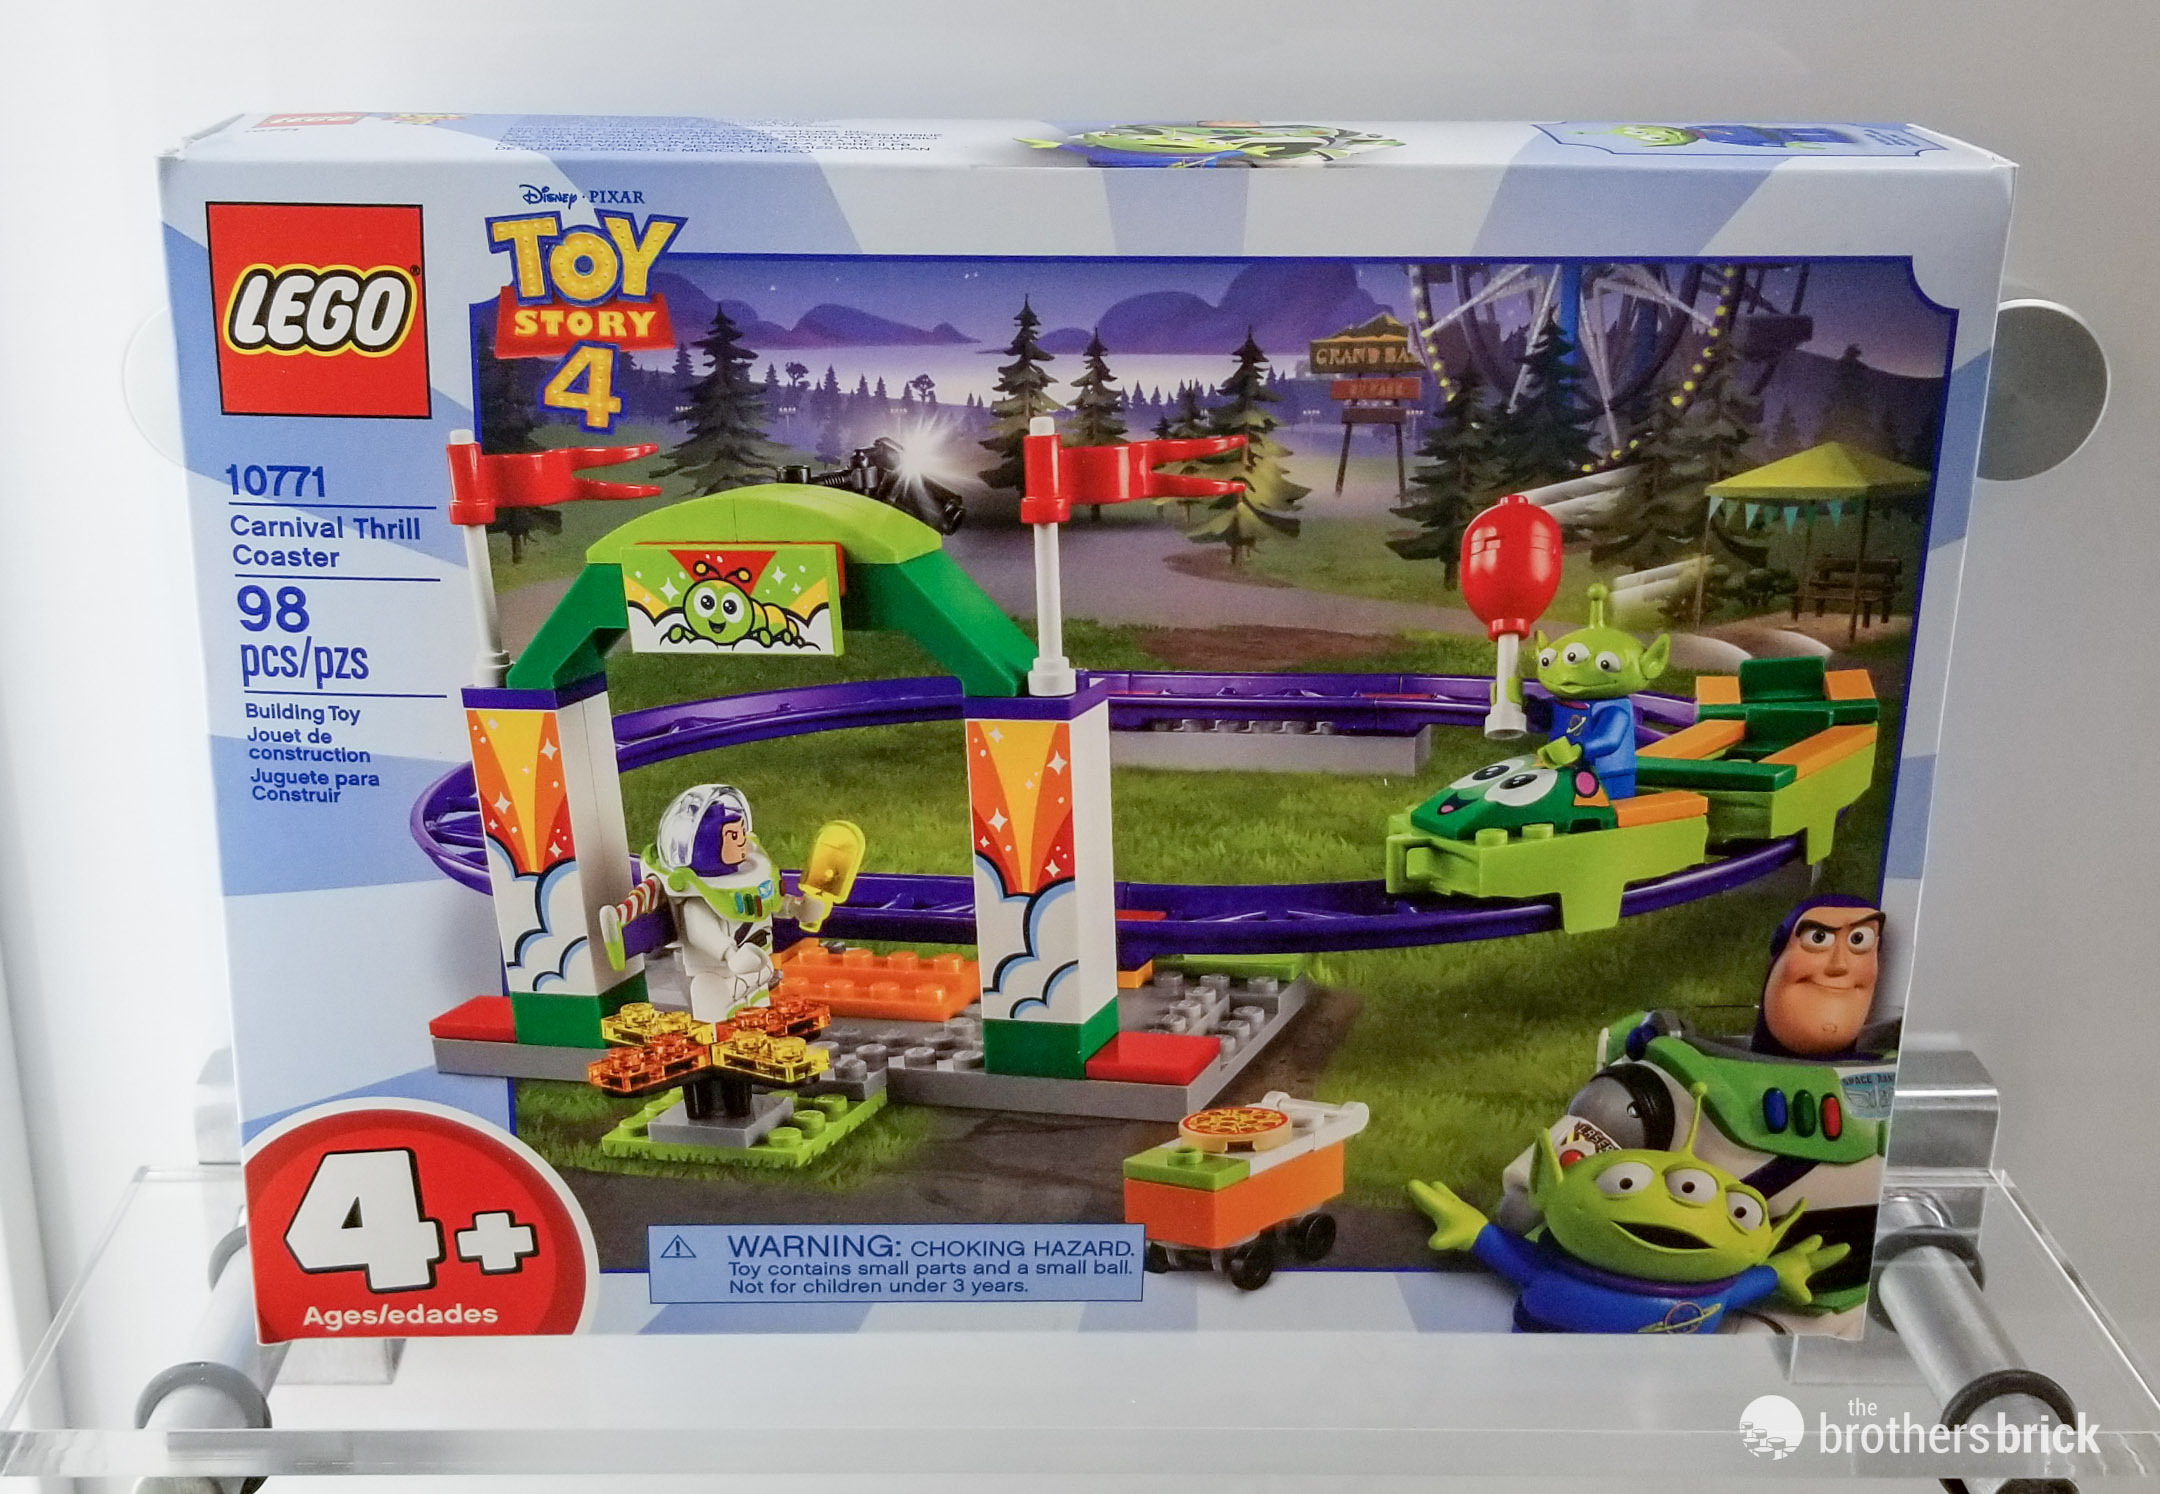 York The 2019 New Toy 4 Sets Fairnews In Person Story At Lego 80wOPXnk